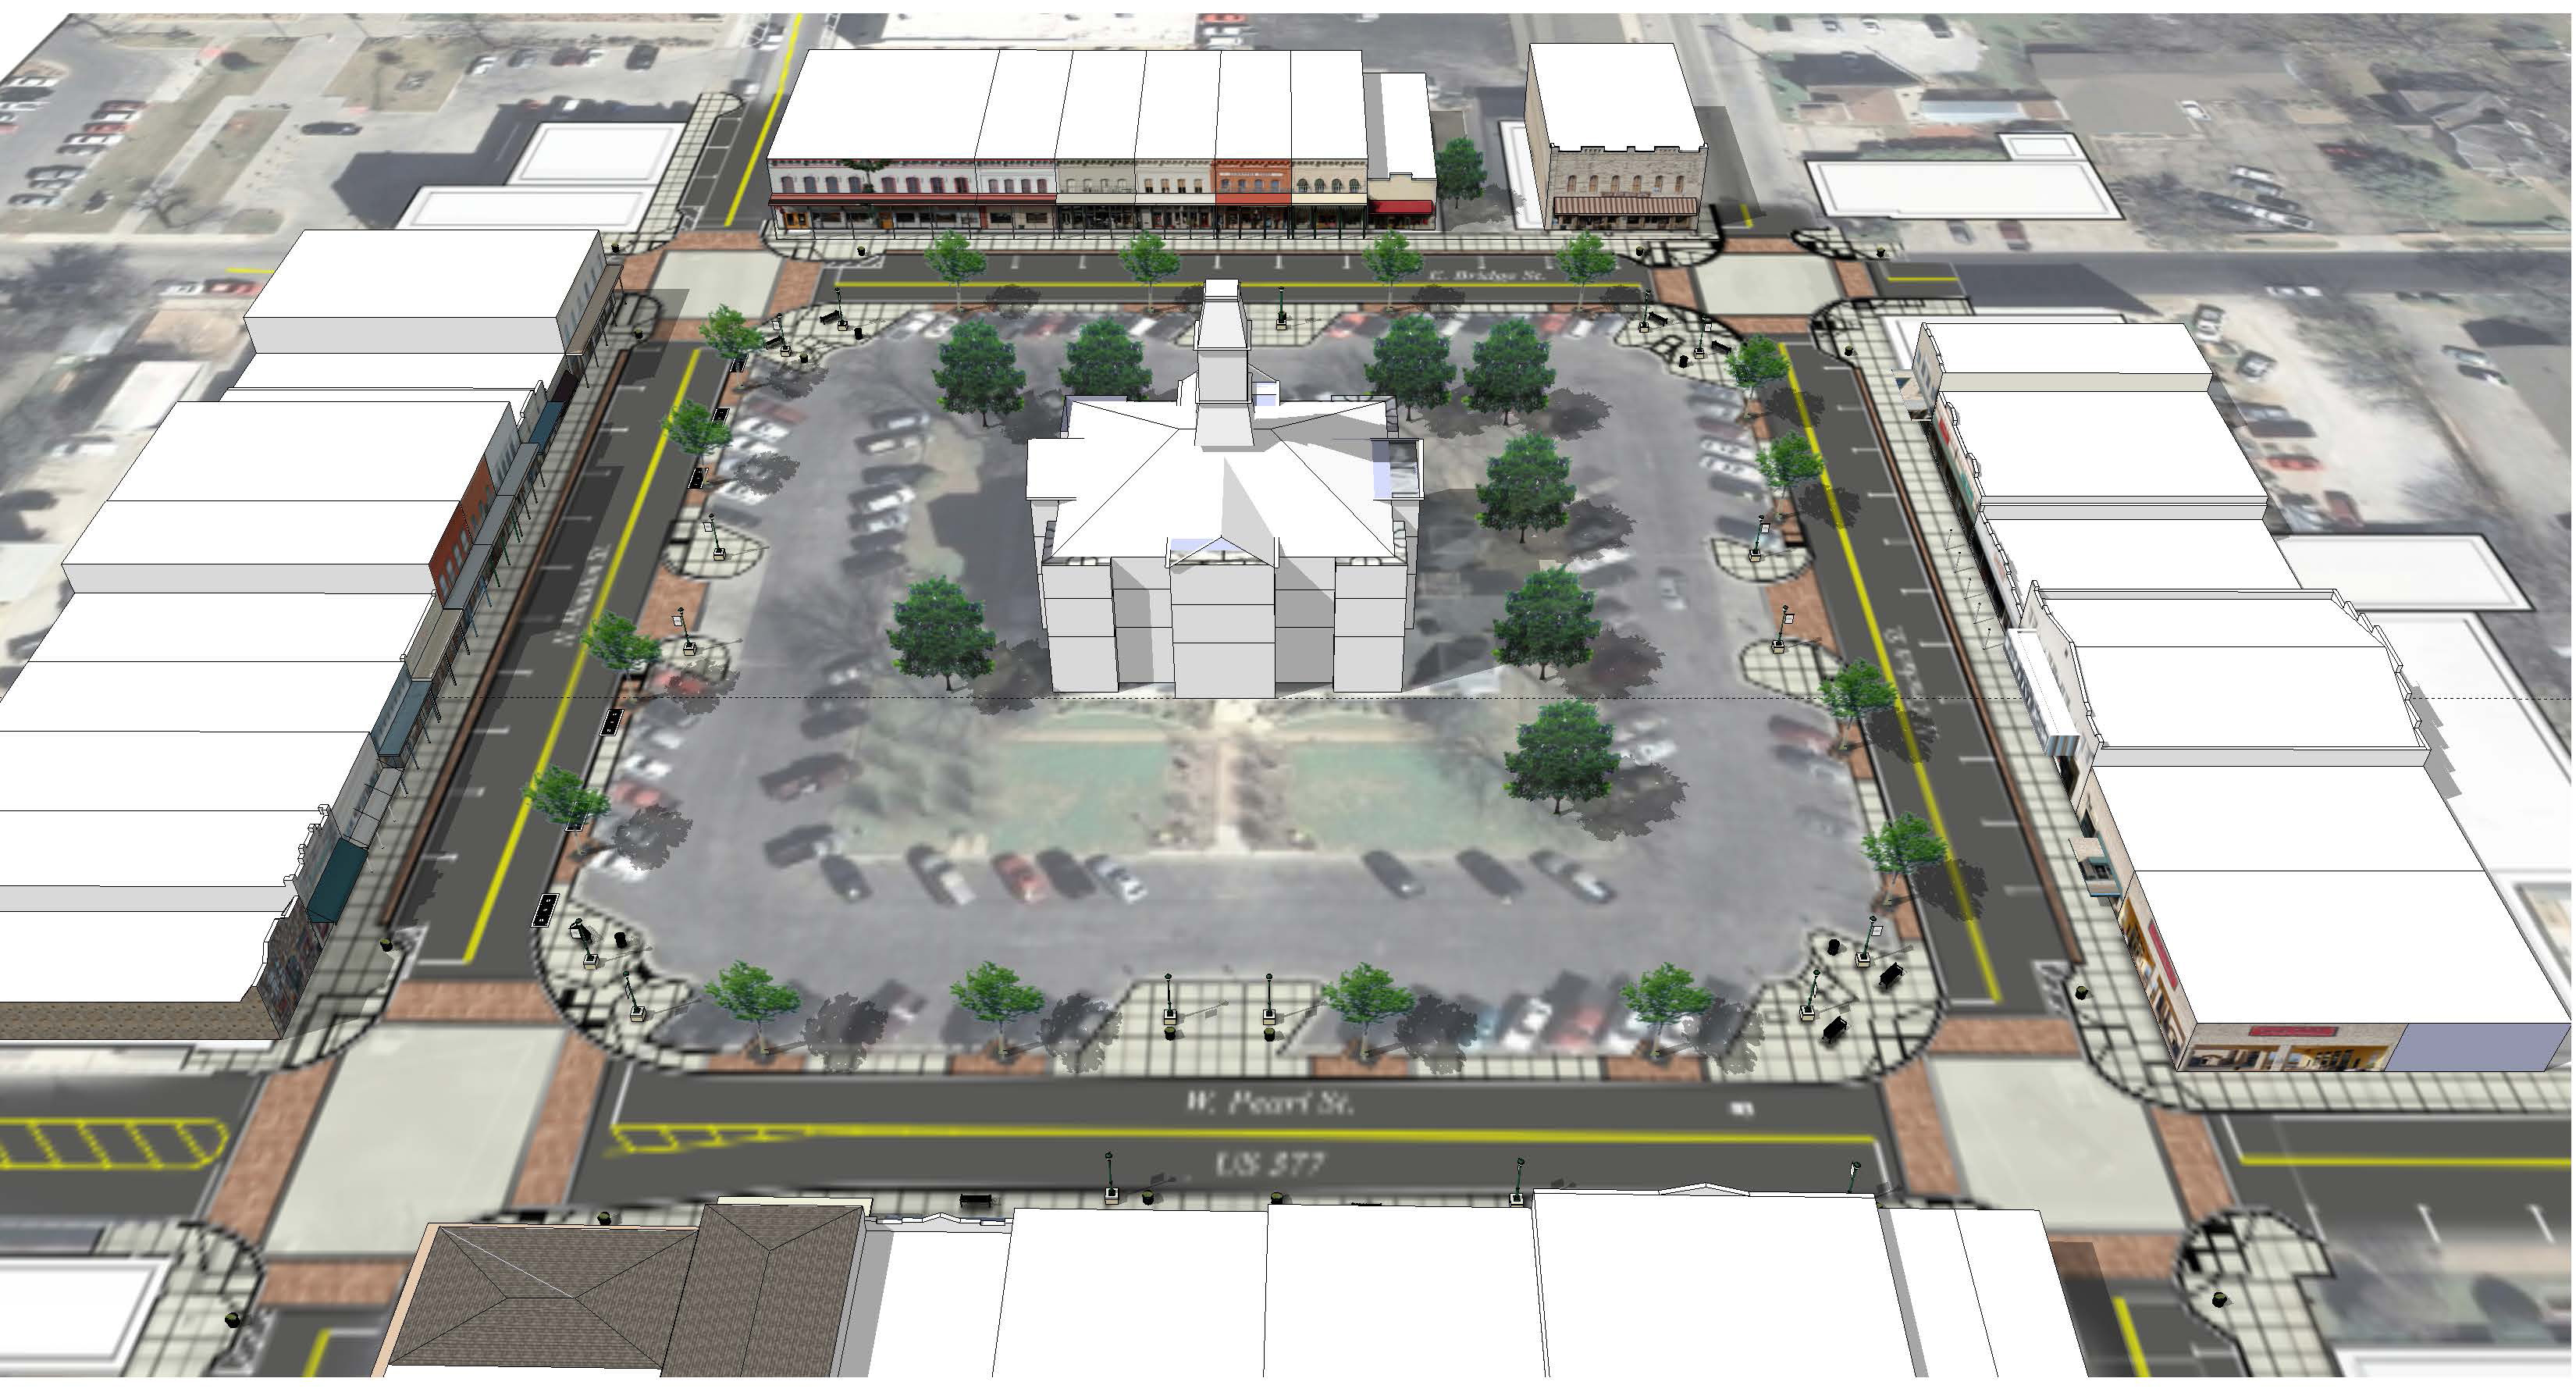 Granbury, TX - Official Website - Downtown Streetscape Project